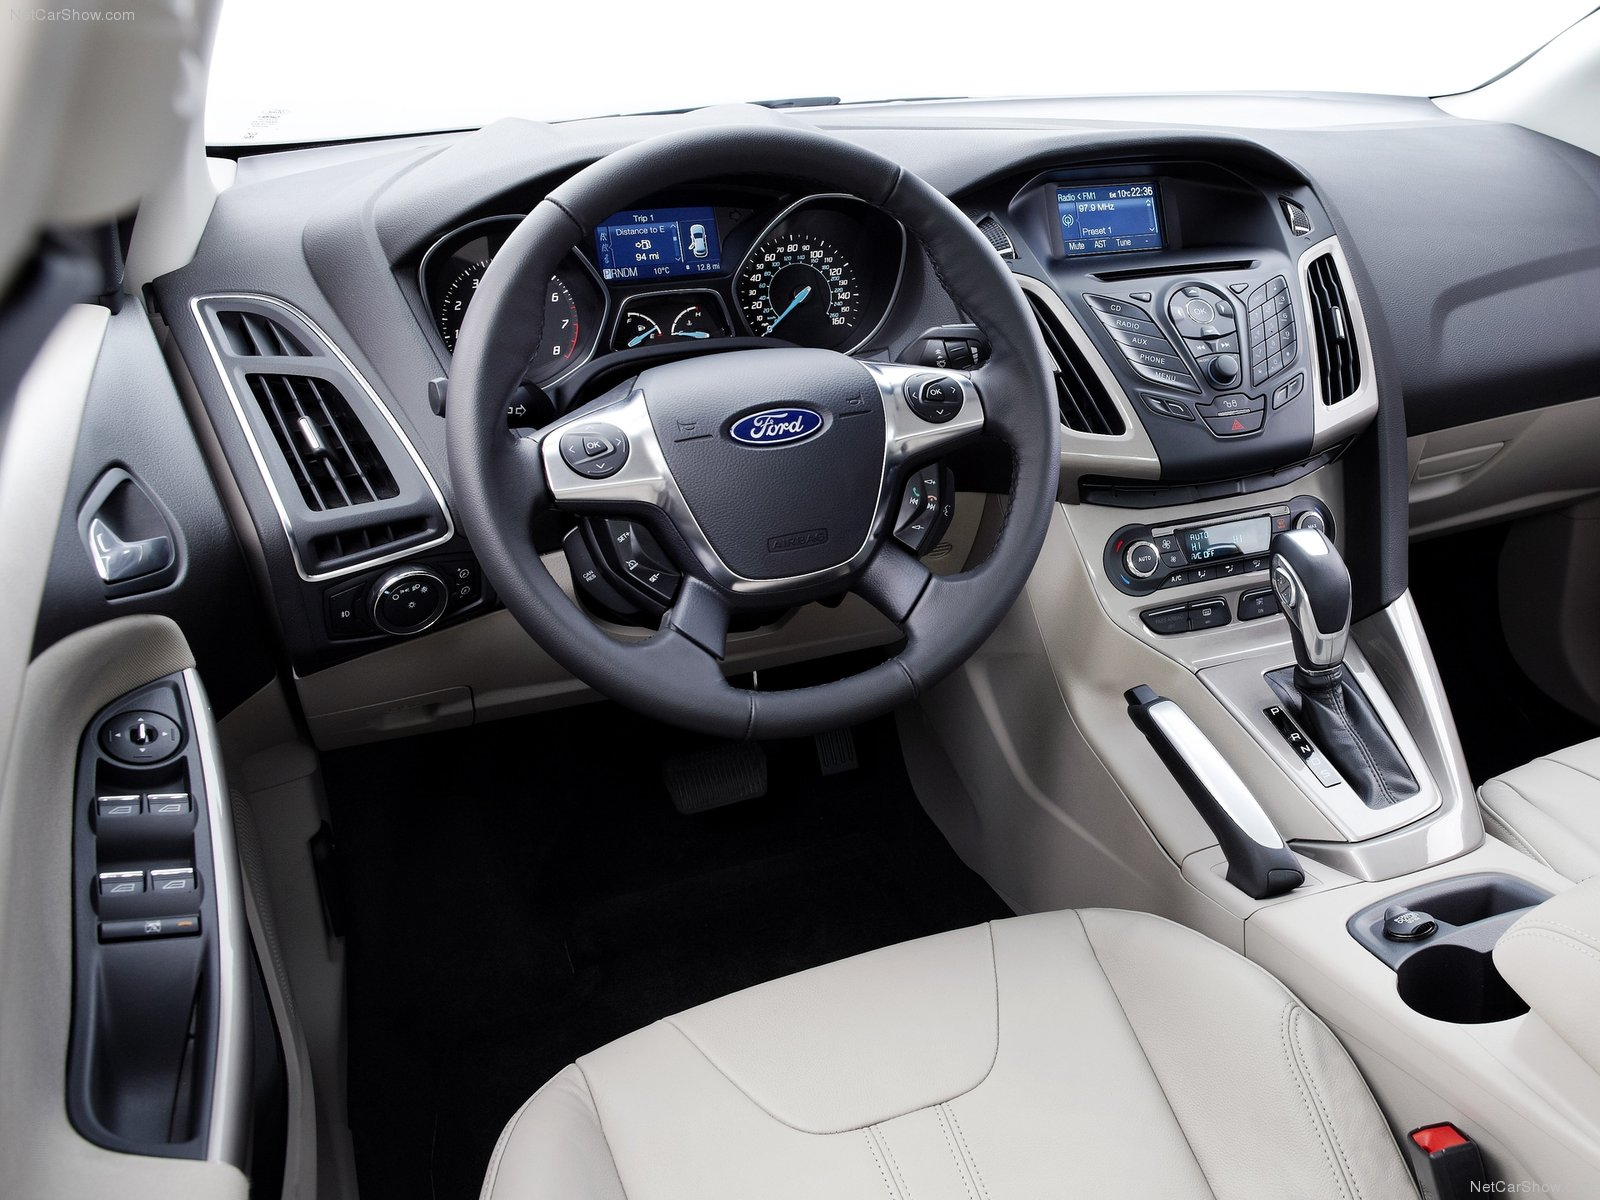 Tuning ford focus 2011 online accessories and spare parts for tuning ford focus 2011 for Ford focus interior accessories